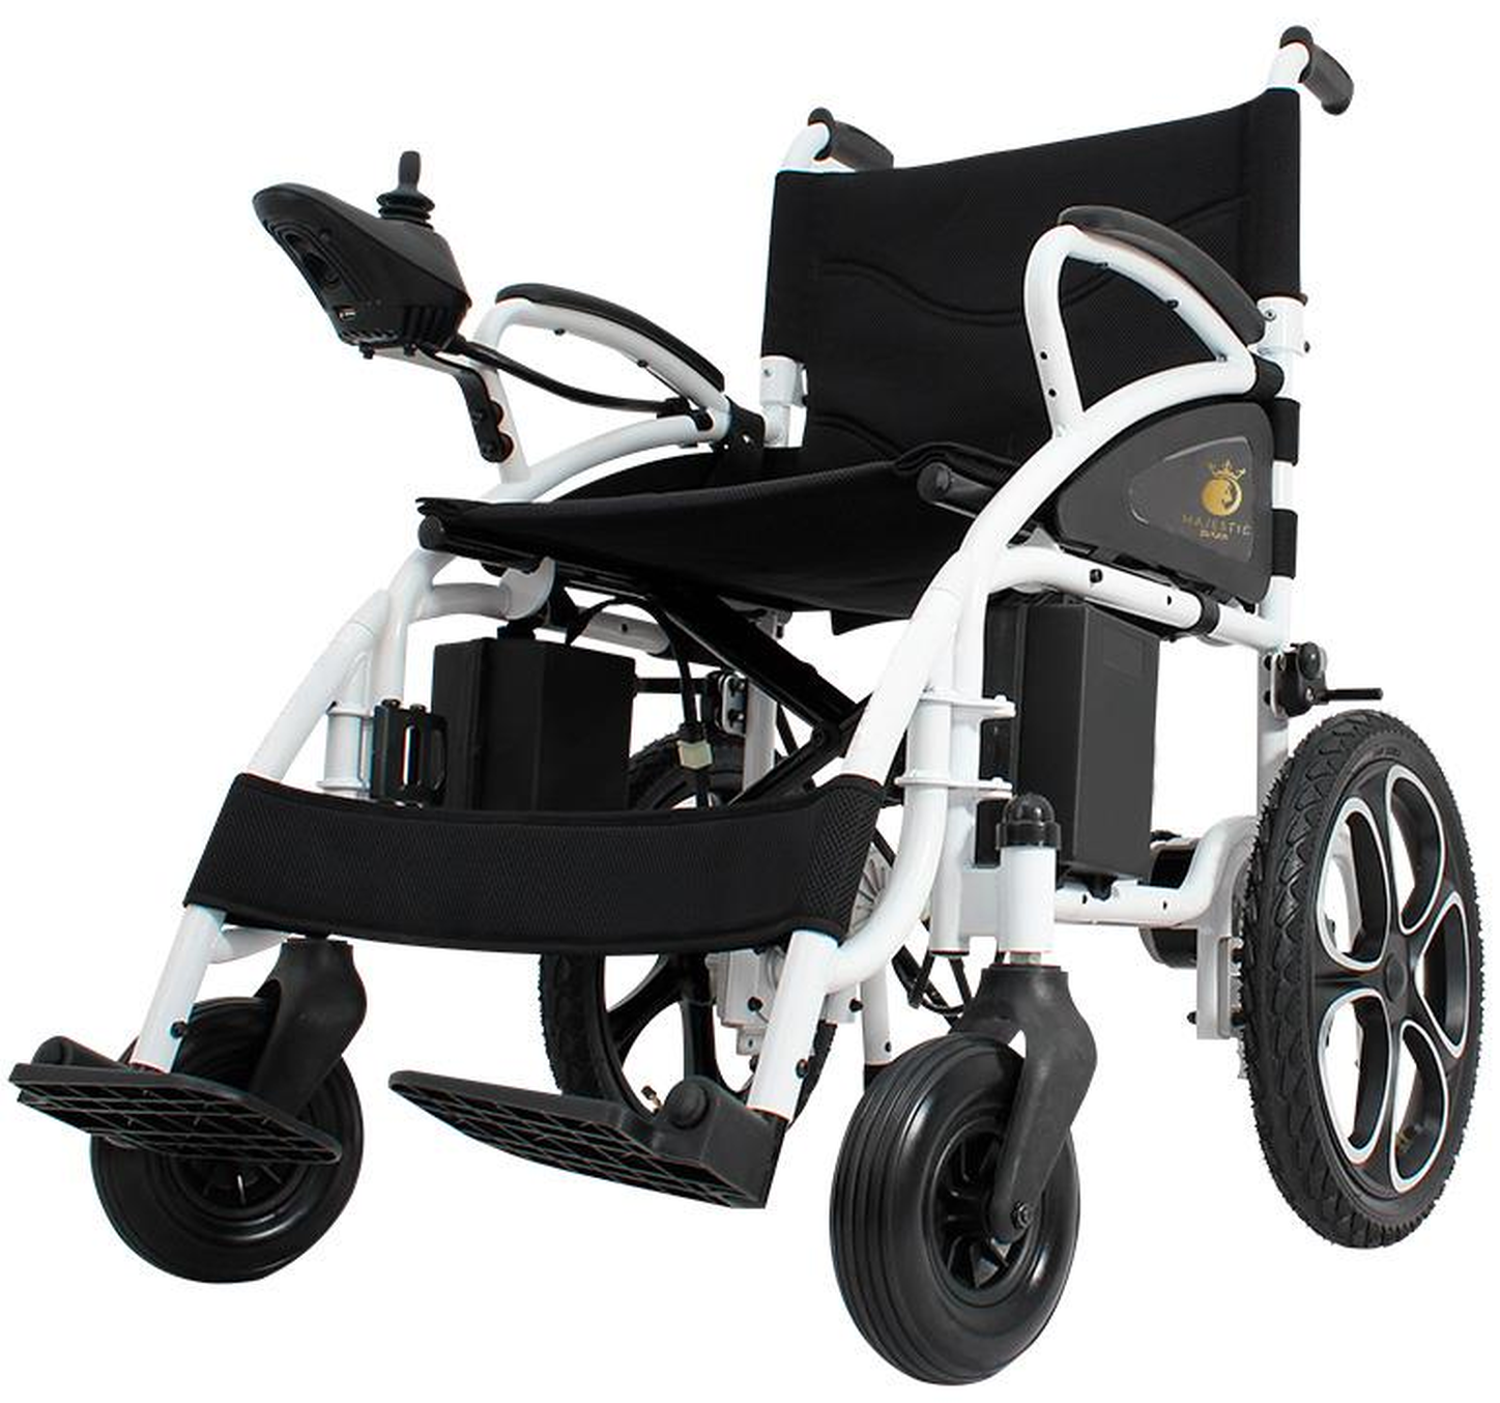 Foldable Lightweight Electric Wheelchair, Fold Folding Electric Wheelchair, Medical Mobility Aid Power Wheelchair, Heavy Duty